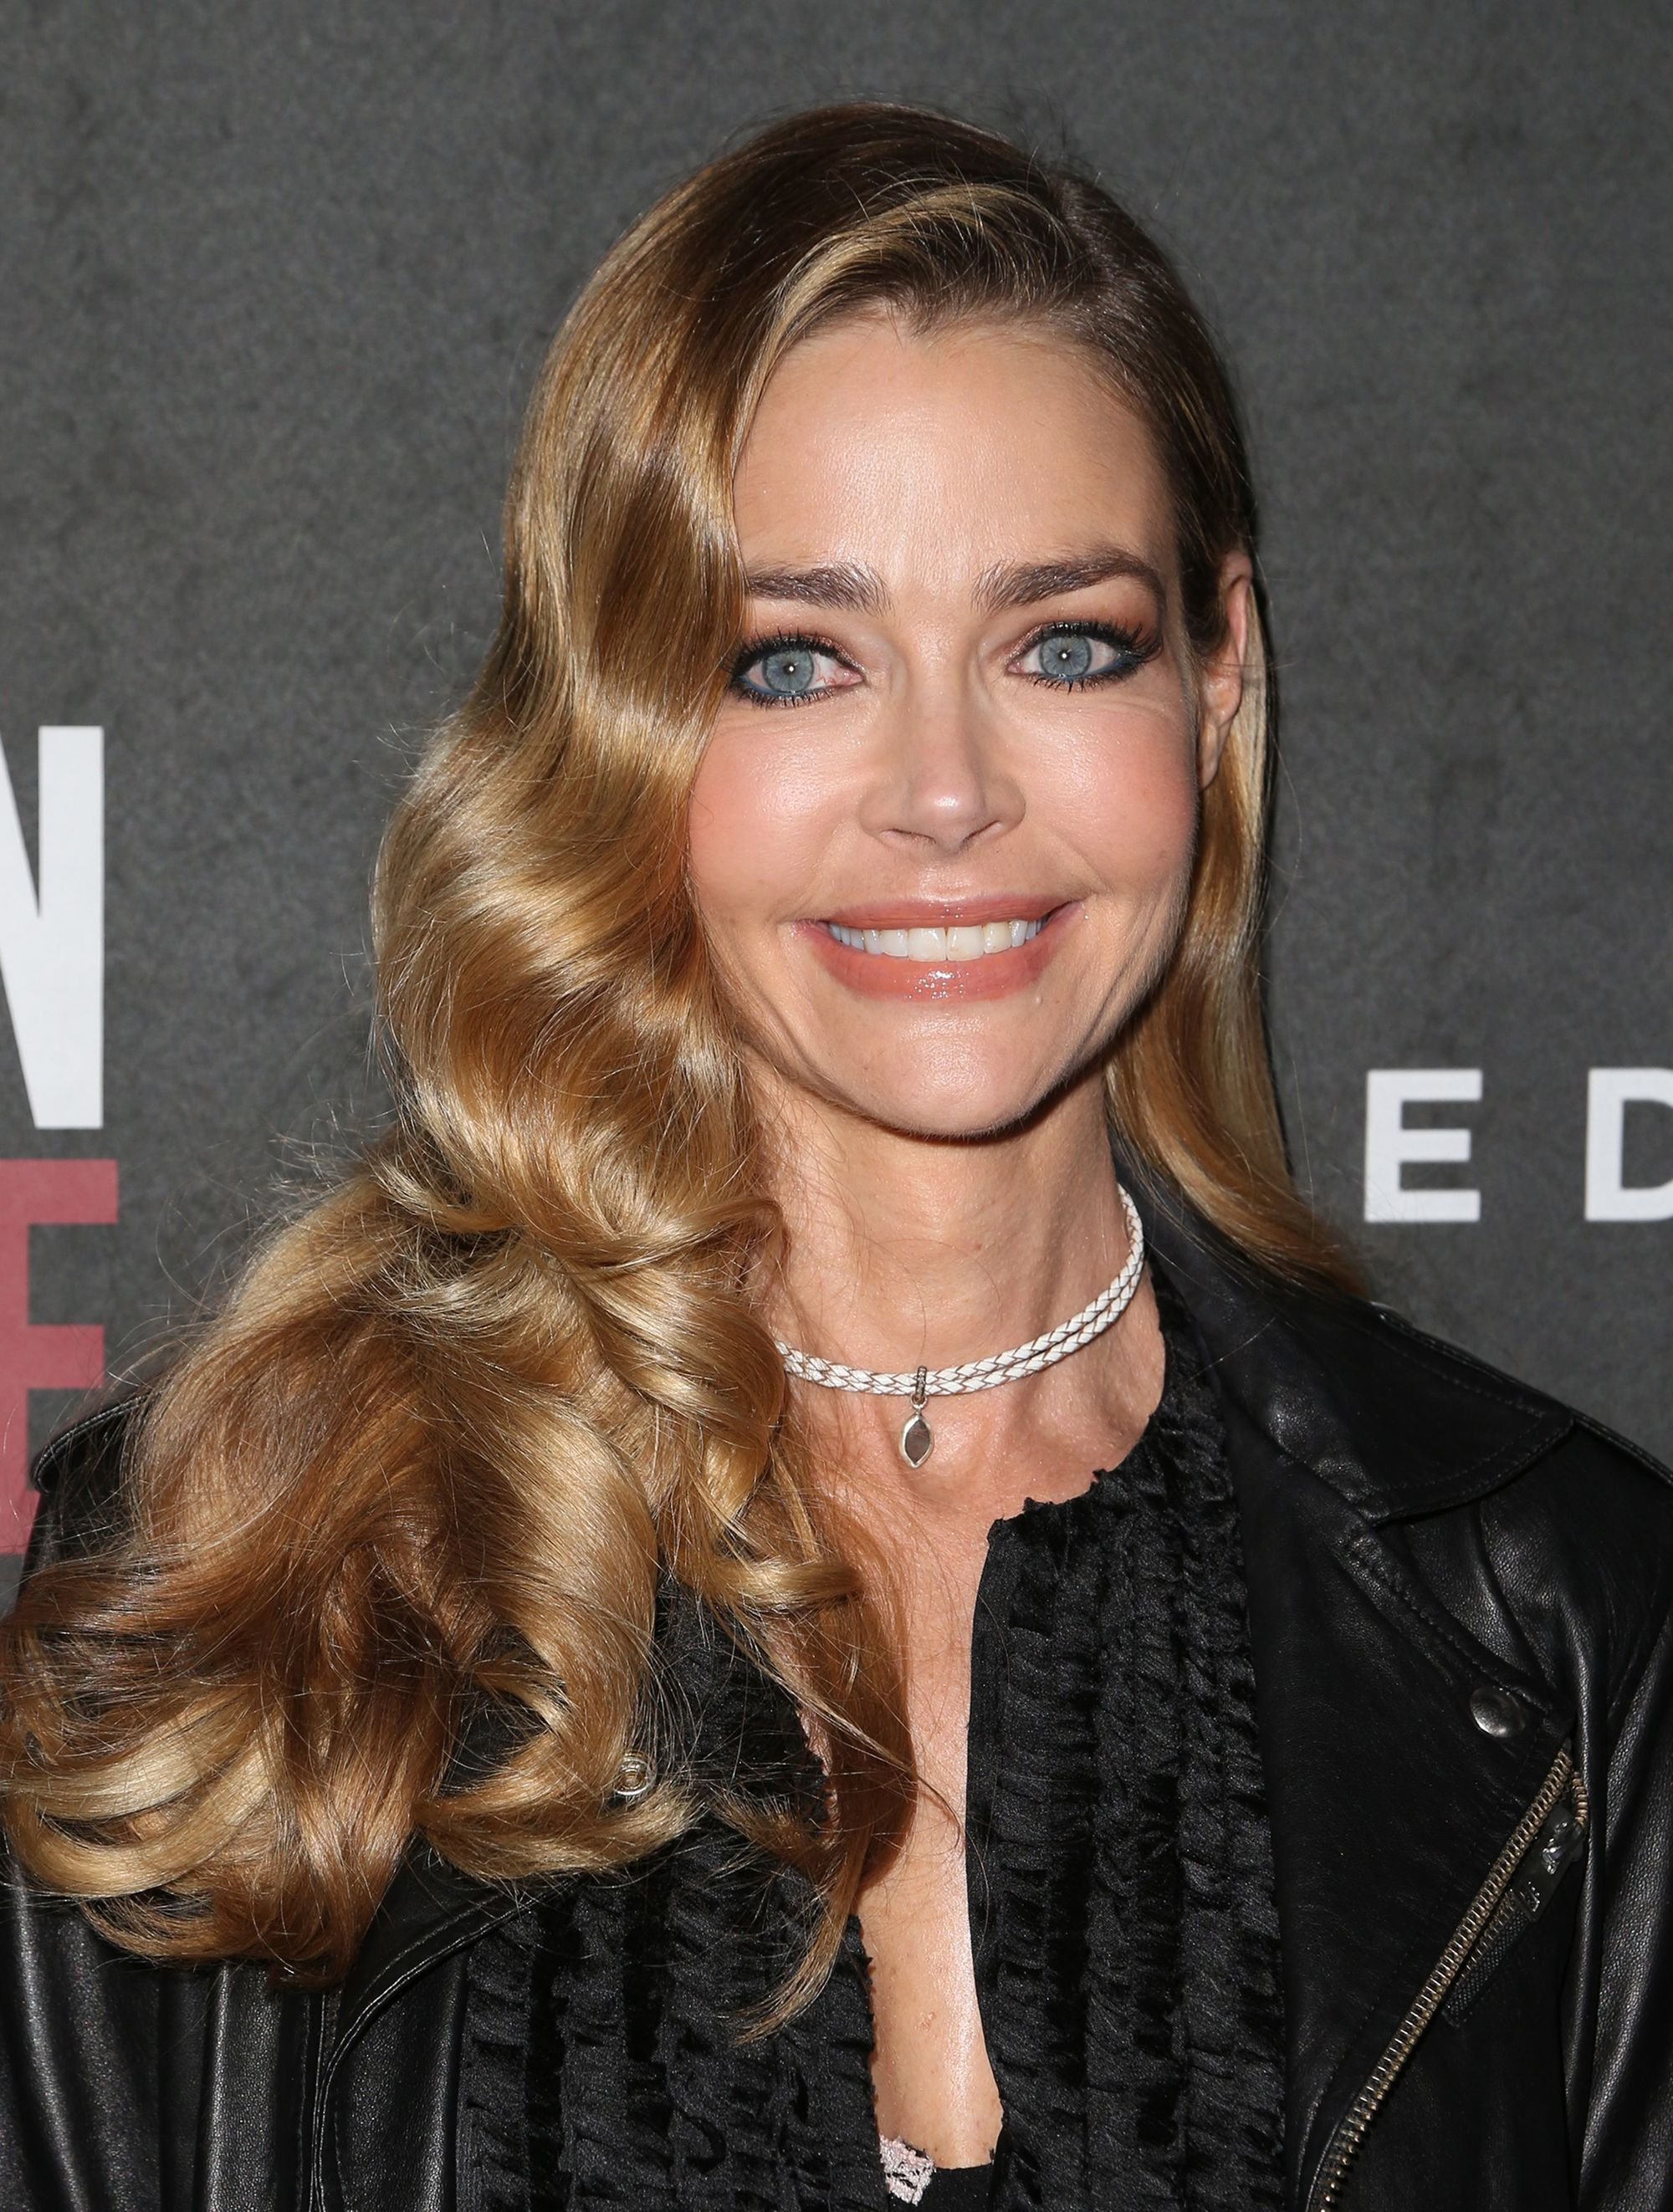 Denise Richards dengan model rambut Hollywood curls warna pirang gelap.